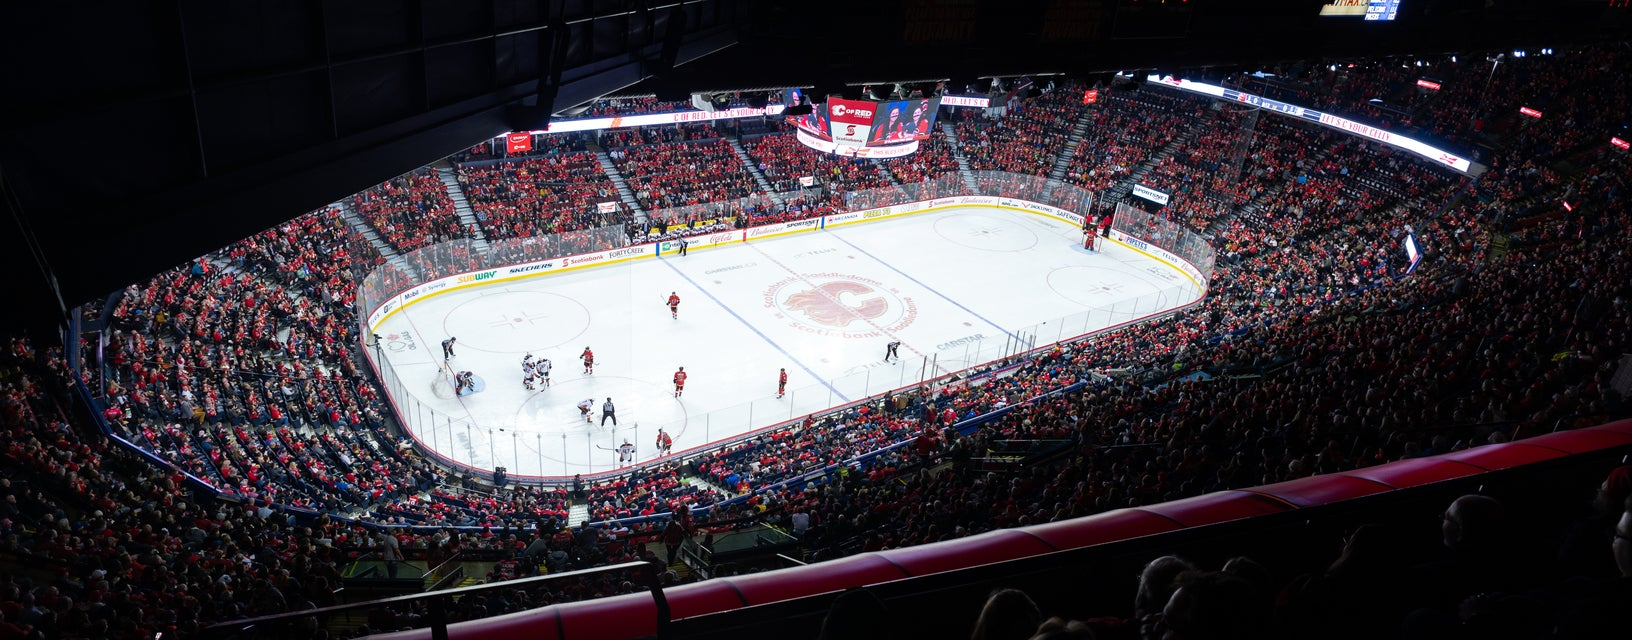 Seat view from Press Level